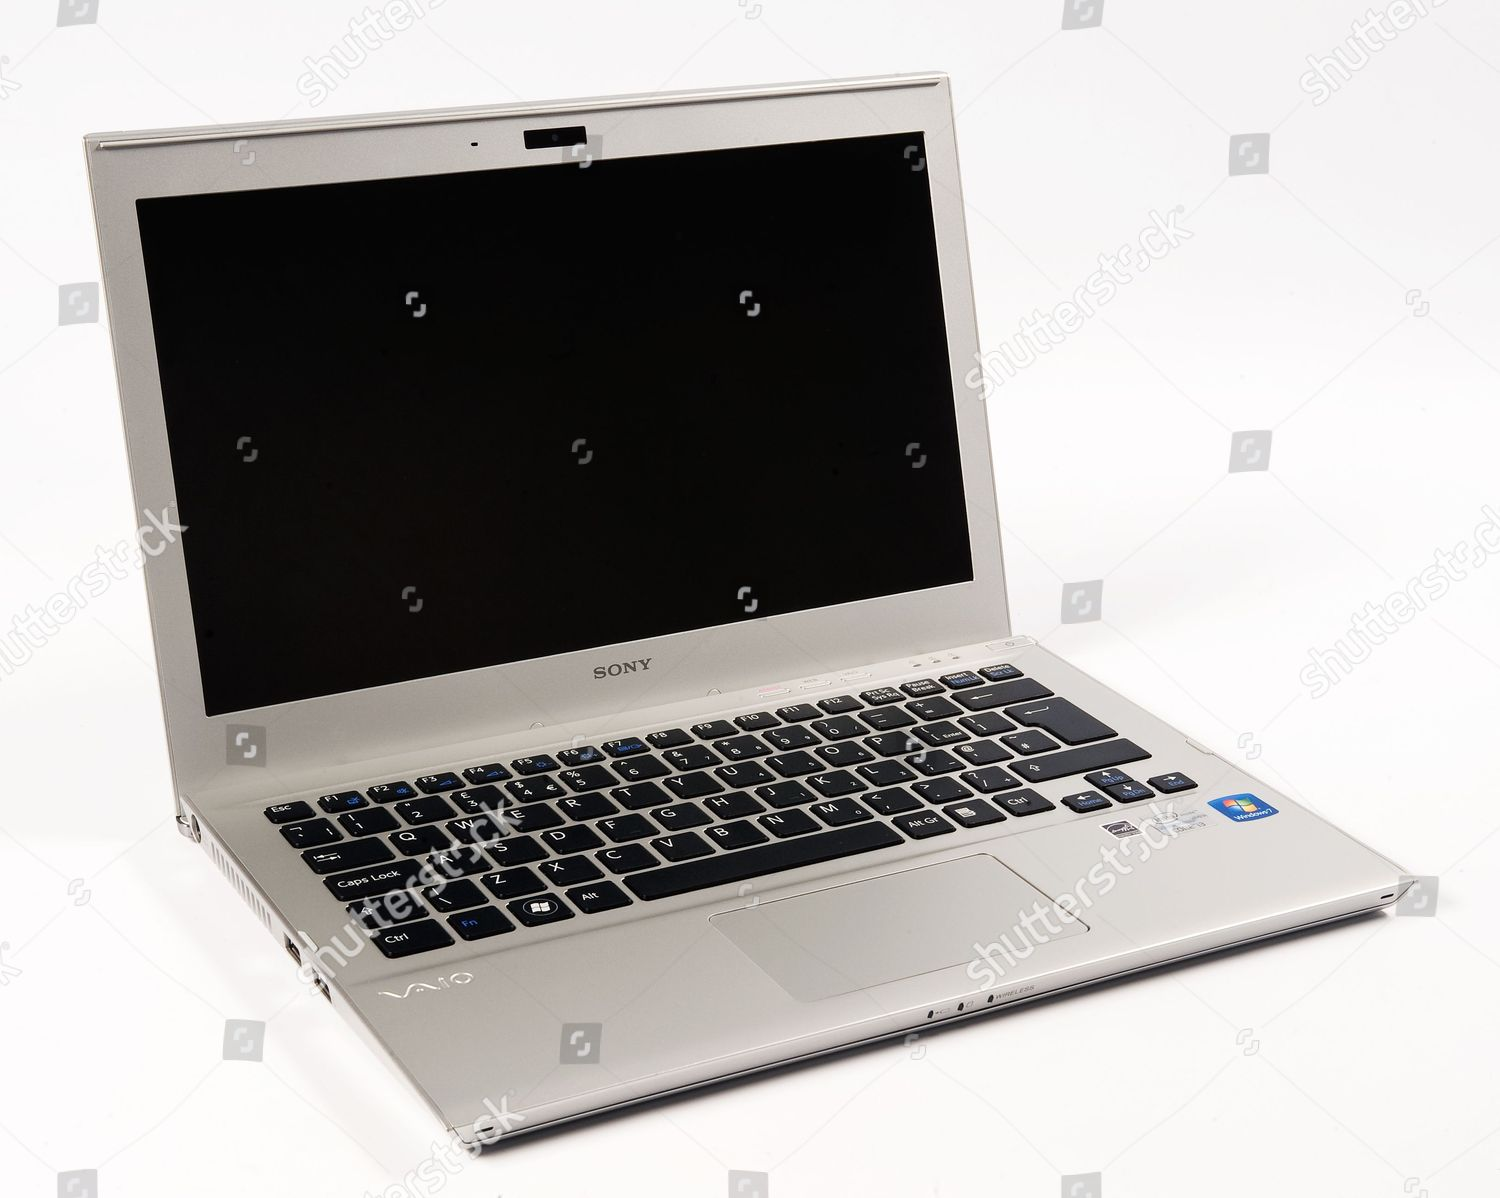 Sony Vaio T13 Laptop PC Editorial Stock Photo - Stock Image